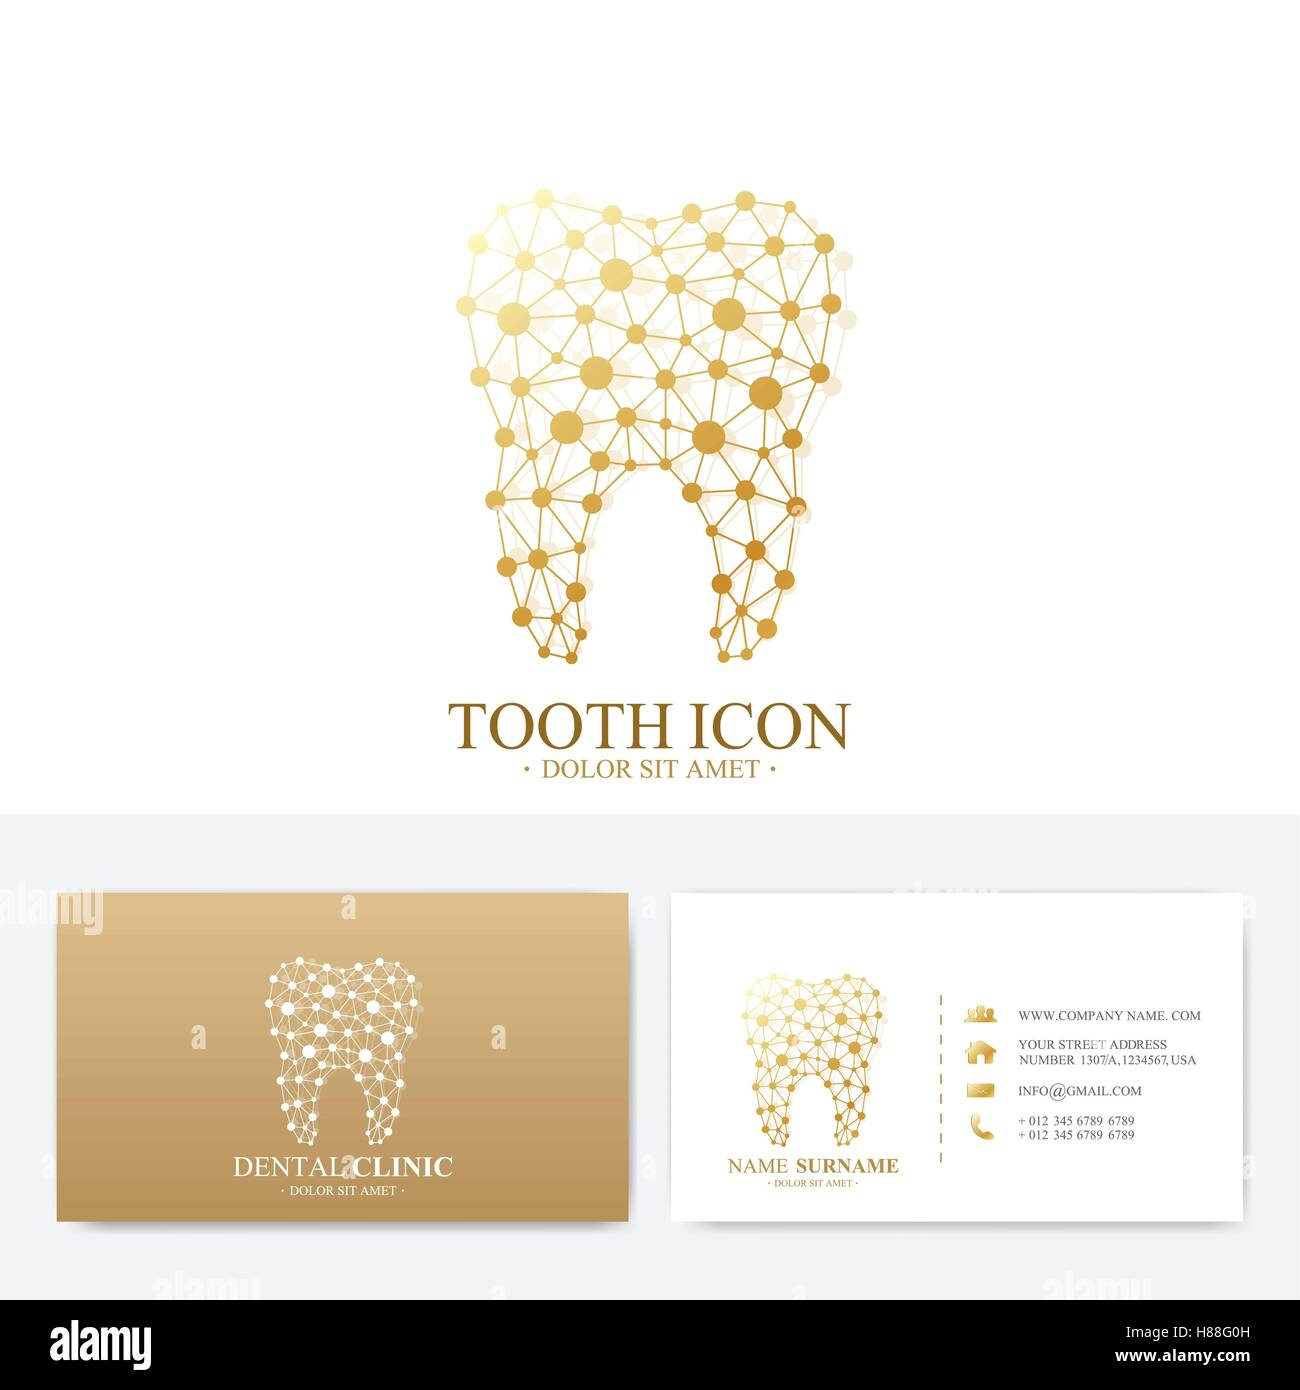 Premium business card print template visiting dental clinic card premium business card print template visiting dental clinic card with tooth logo dentist office oral care dental implants me fbccfo Image collections